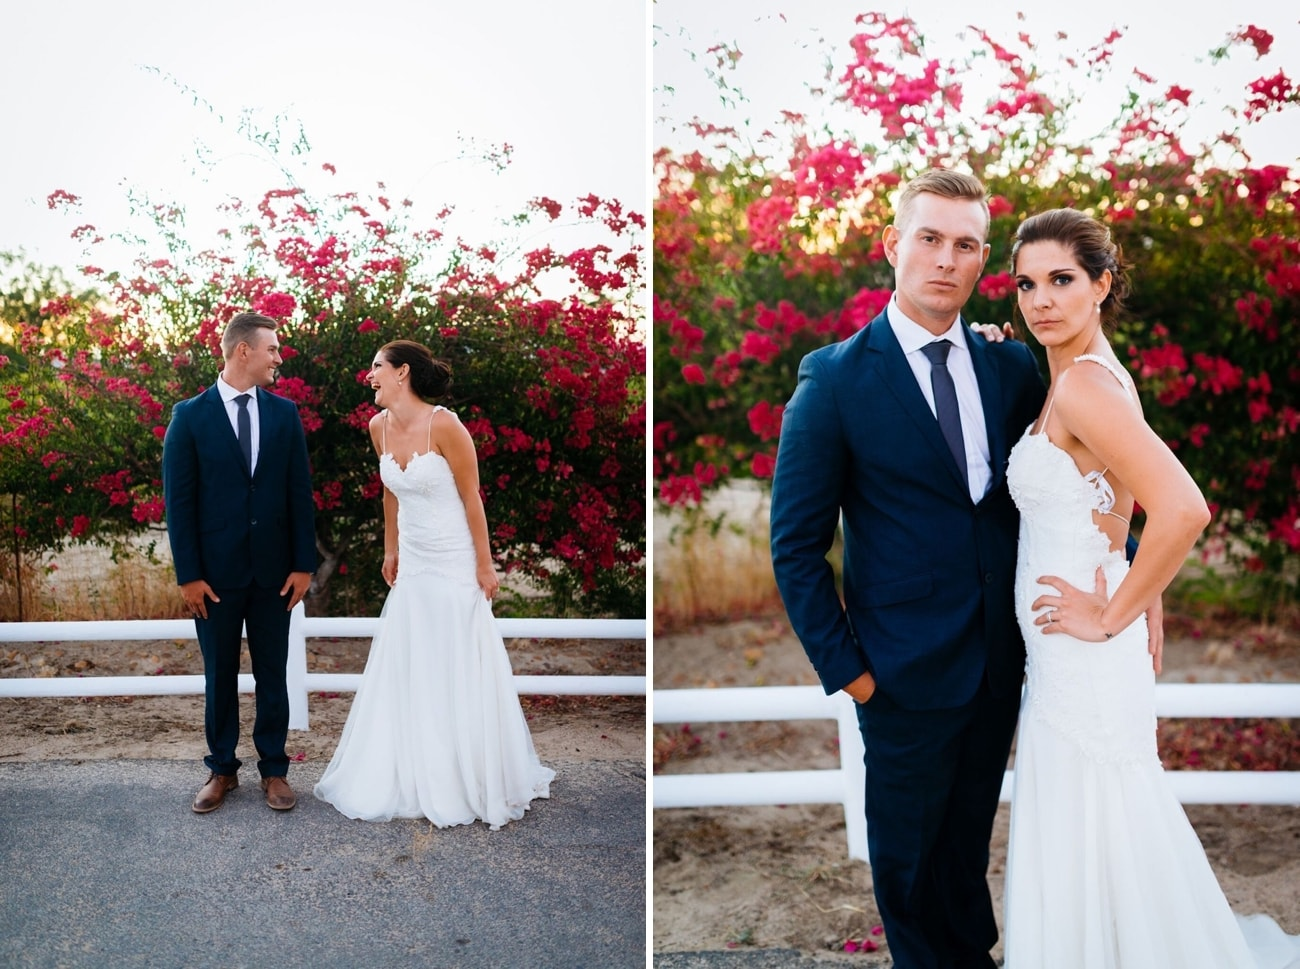 Bride and groom with bougainvillea | Credit: Matthew Carr